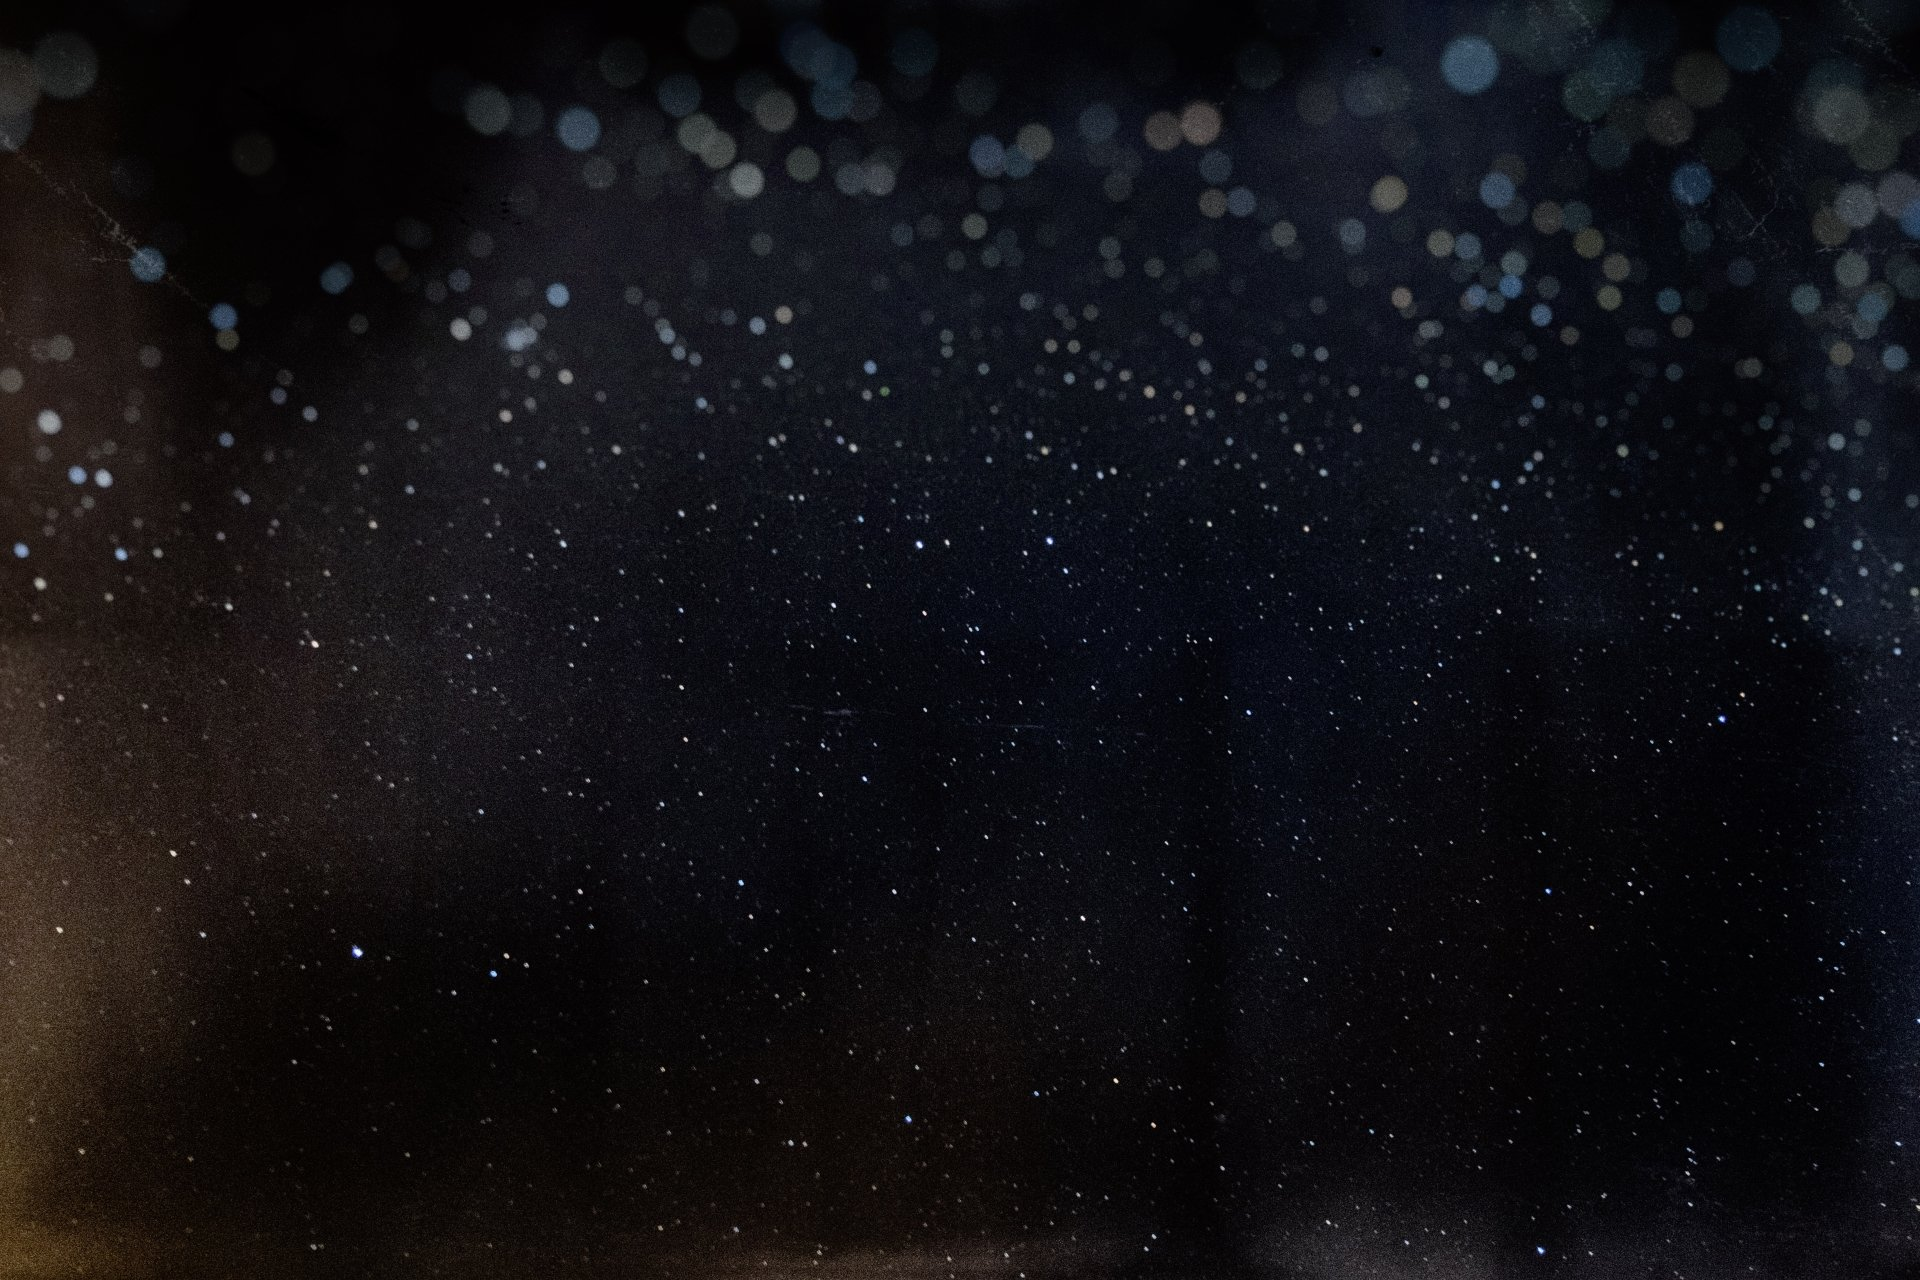 Artistic - Bokeh  Particle Wallpaper